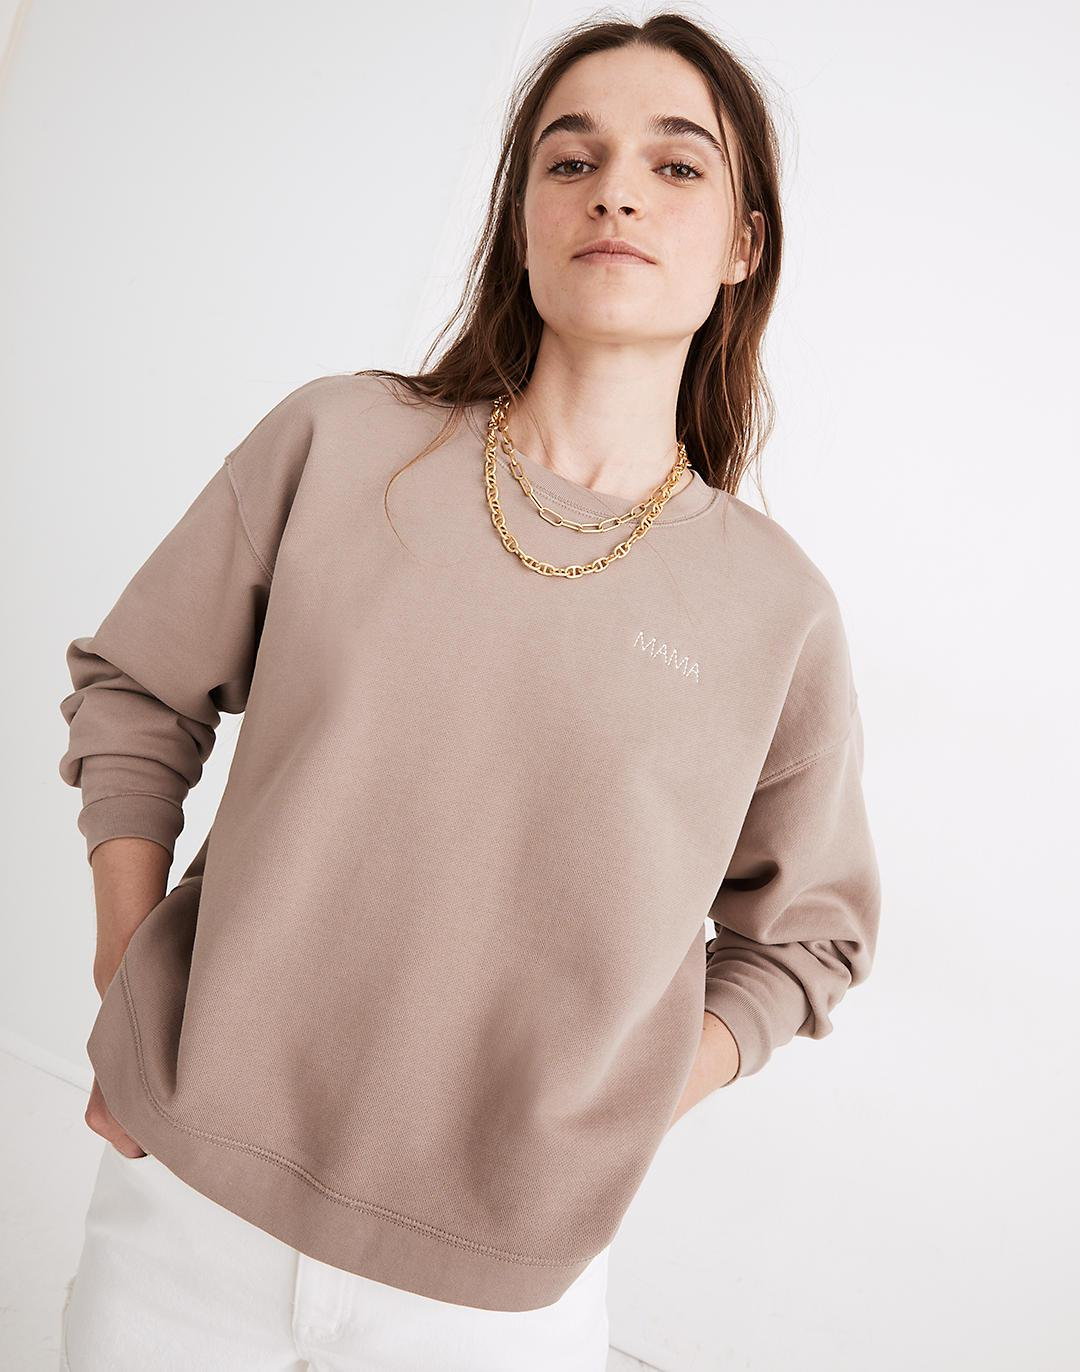 Mama Embroidered (Re)sourced Cotton Swing Sweatshirt